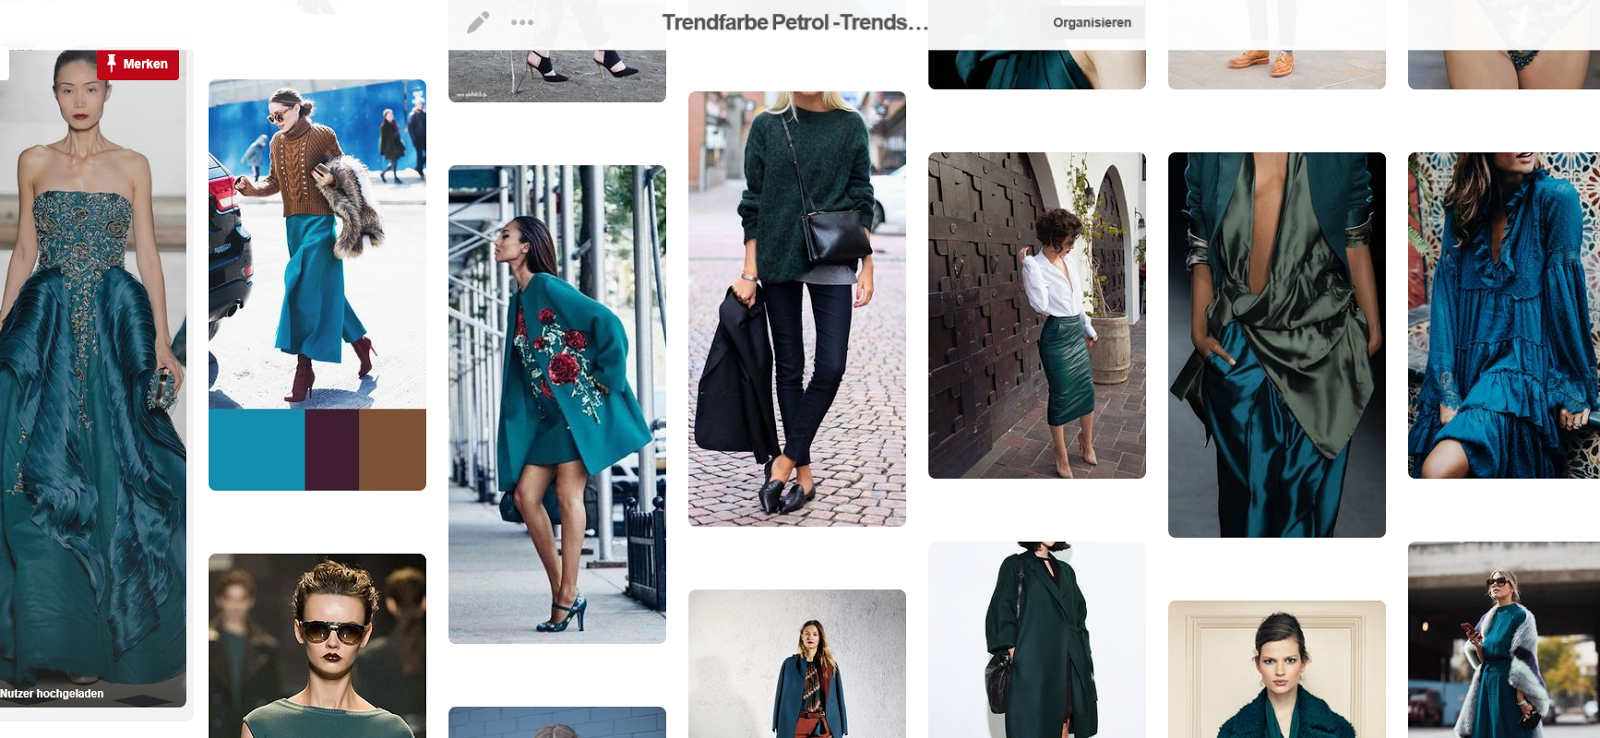 https://www.pinterest.de/yourlookinlife/trendfarbe-petrol-trends-hw-2017/